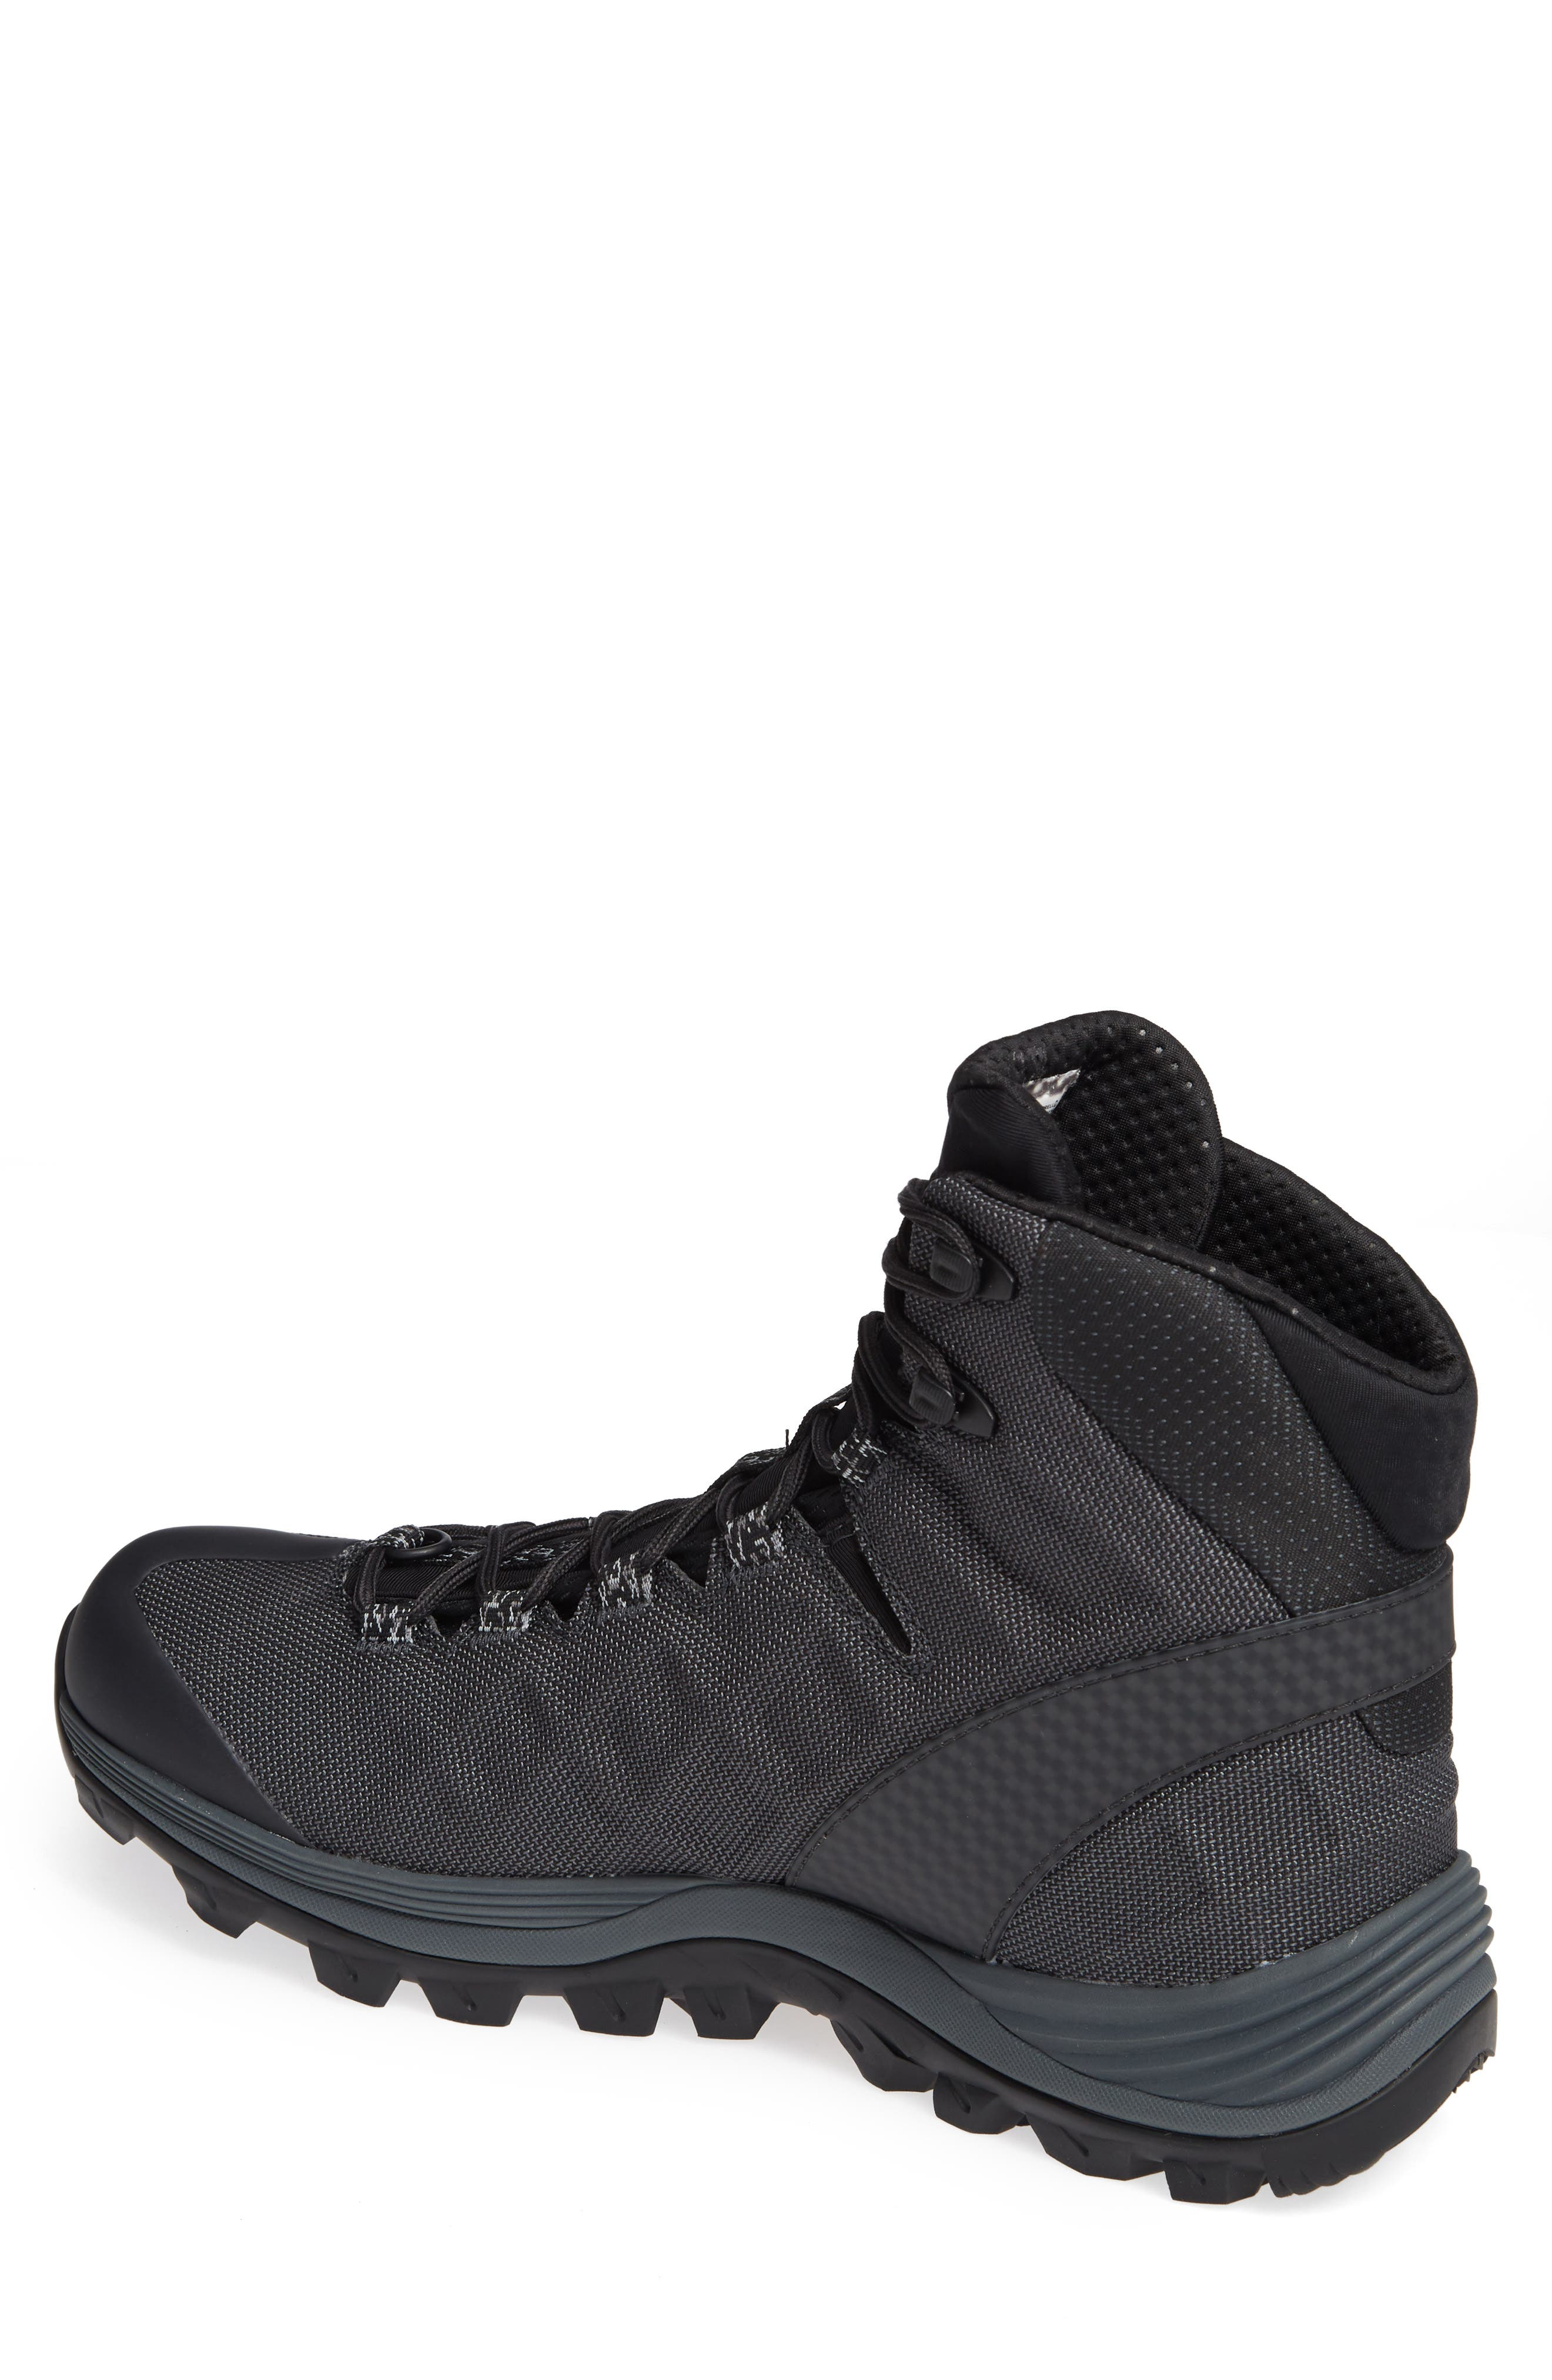 Thermo Rogue Gore-Tex<sup>®</sup> Waterproof Boot,                             Alternate thumbnail 2, color,                             BLACK